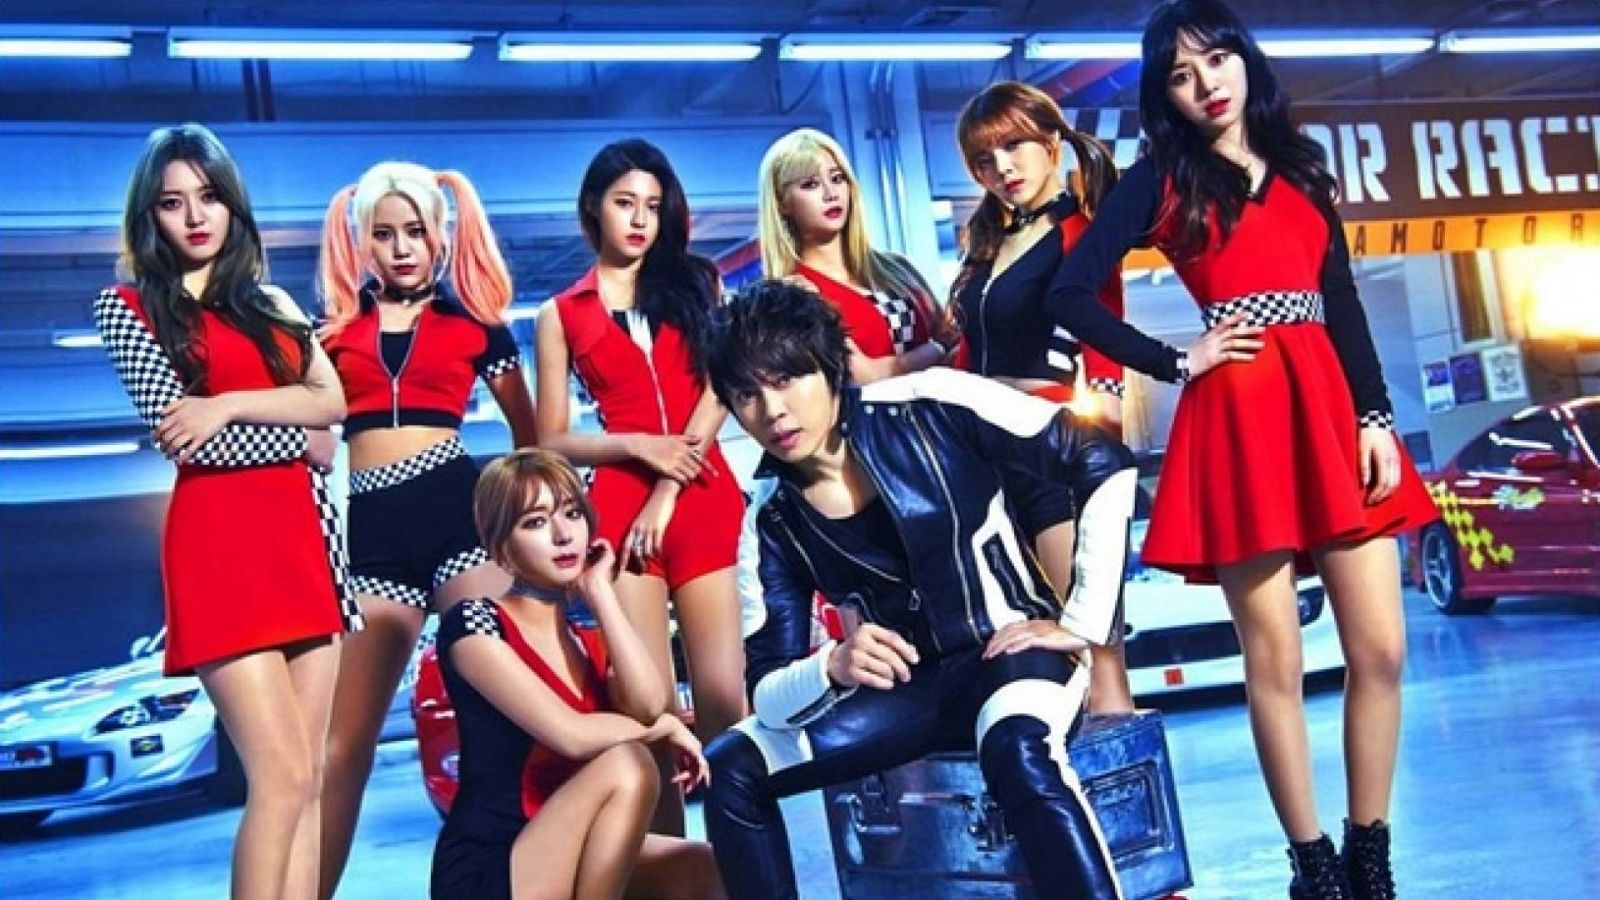 AOA:n neljäs single Japanissa on yhteistyö Takanori Nishikawan kanssa © Sony Music Japan. All Rights Reserved.